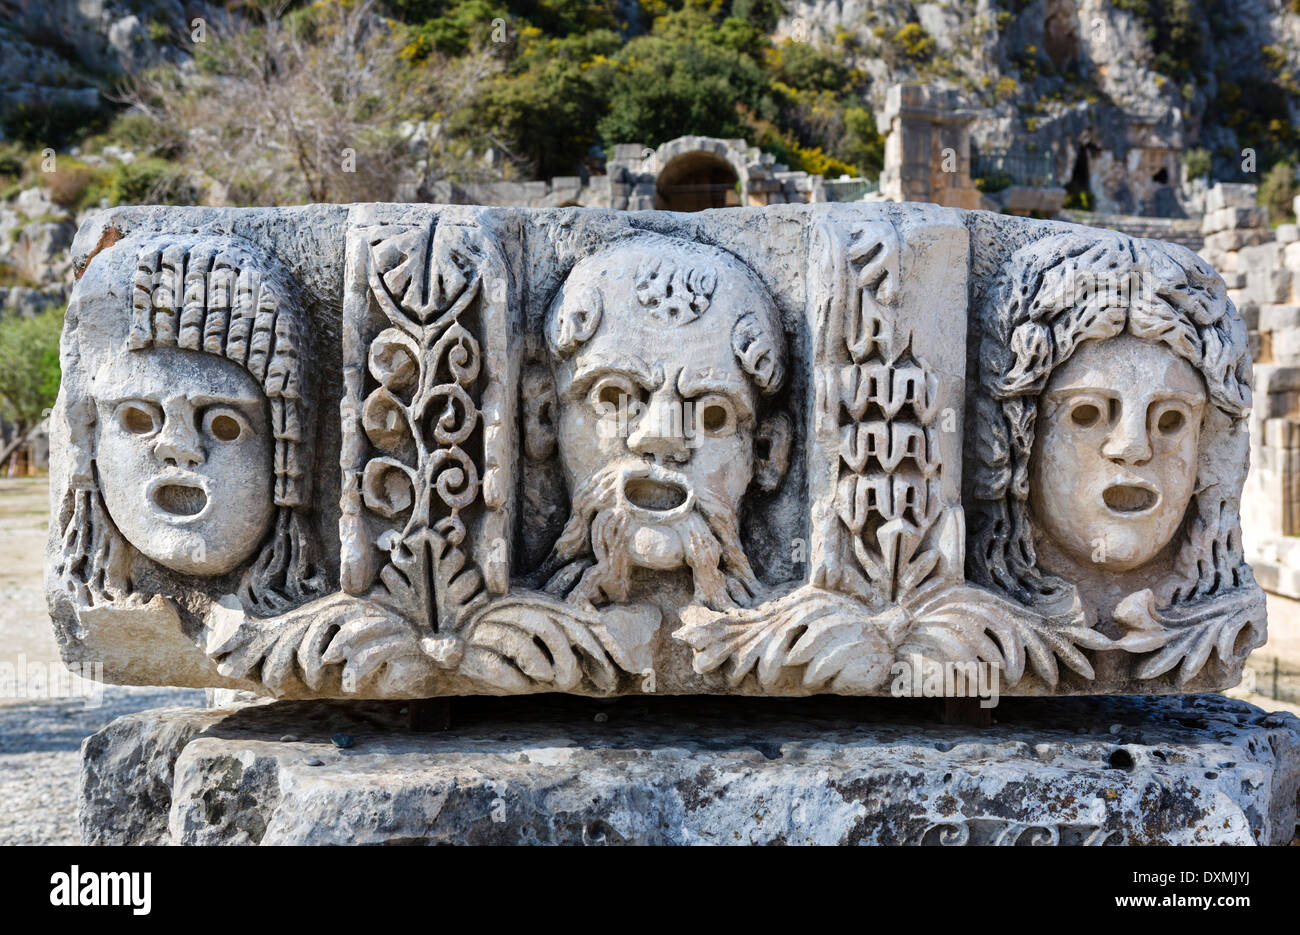 Carvings in the ancient ruins at Myra, Demre, Antalya Province, Lycia, Turkey - Stock Image